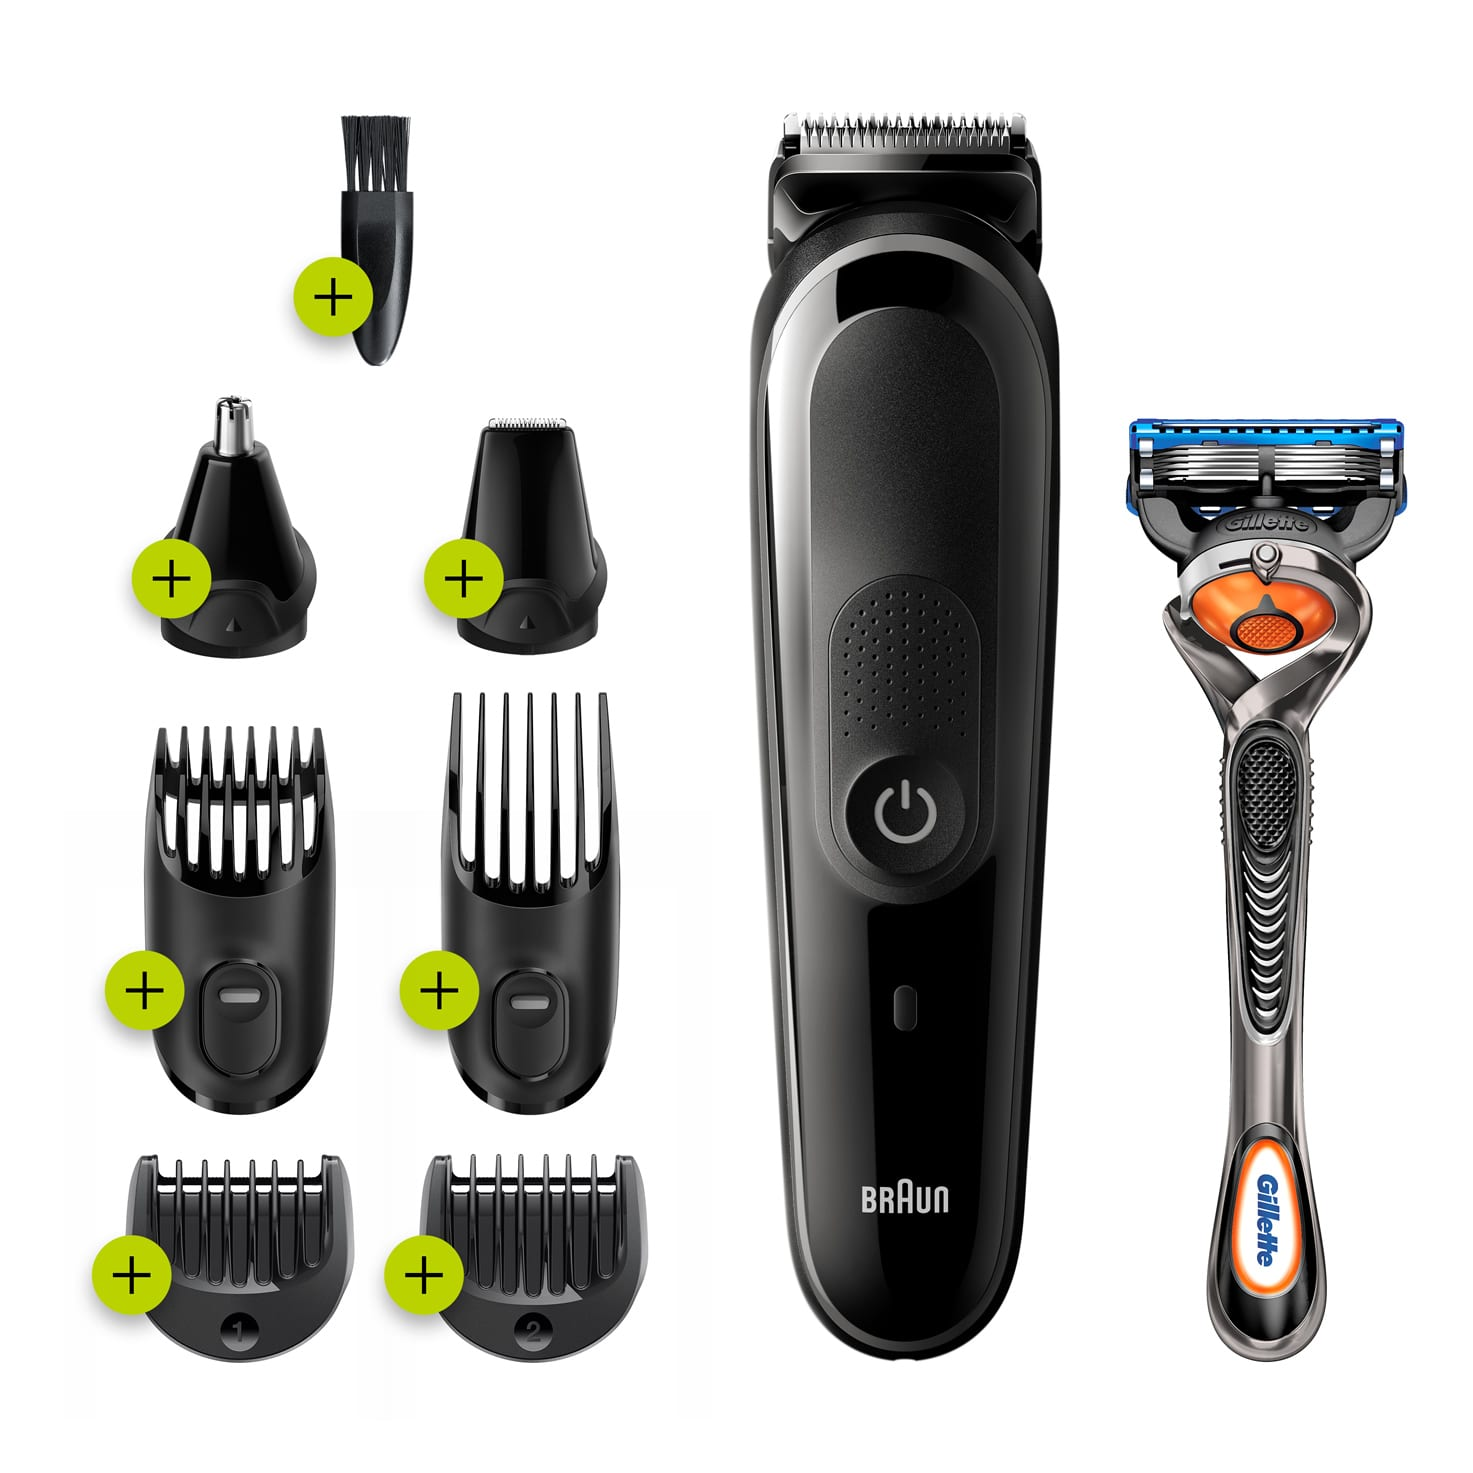 Braun All in one trimmer 3 MGK3260